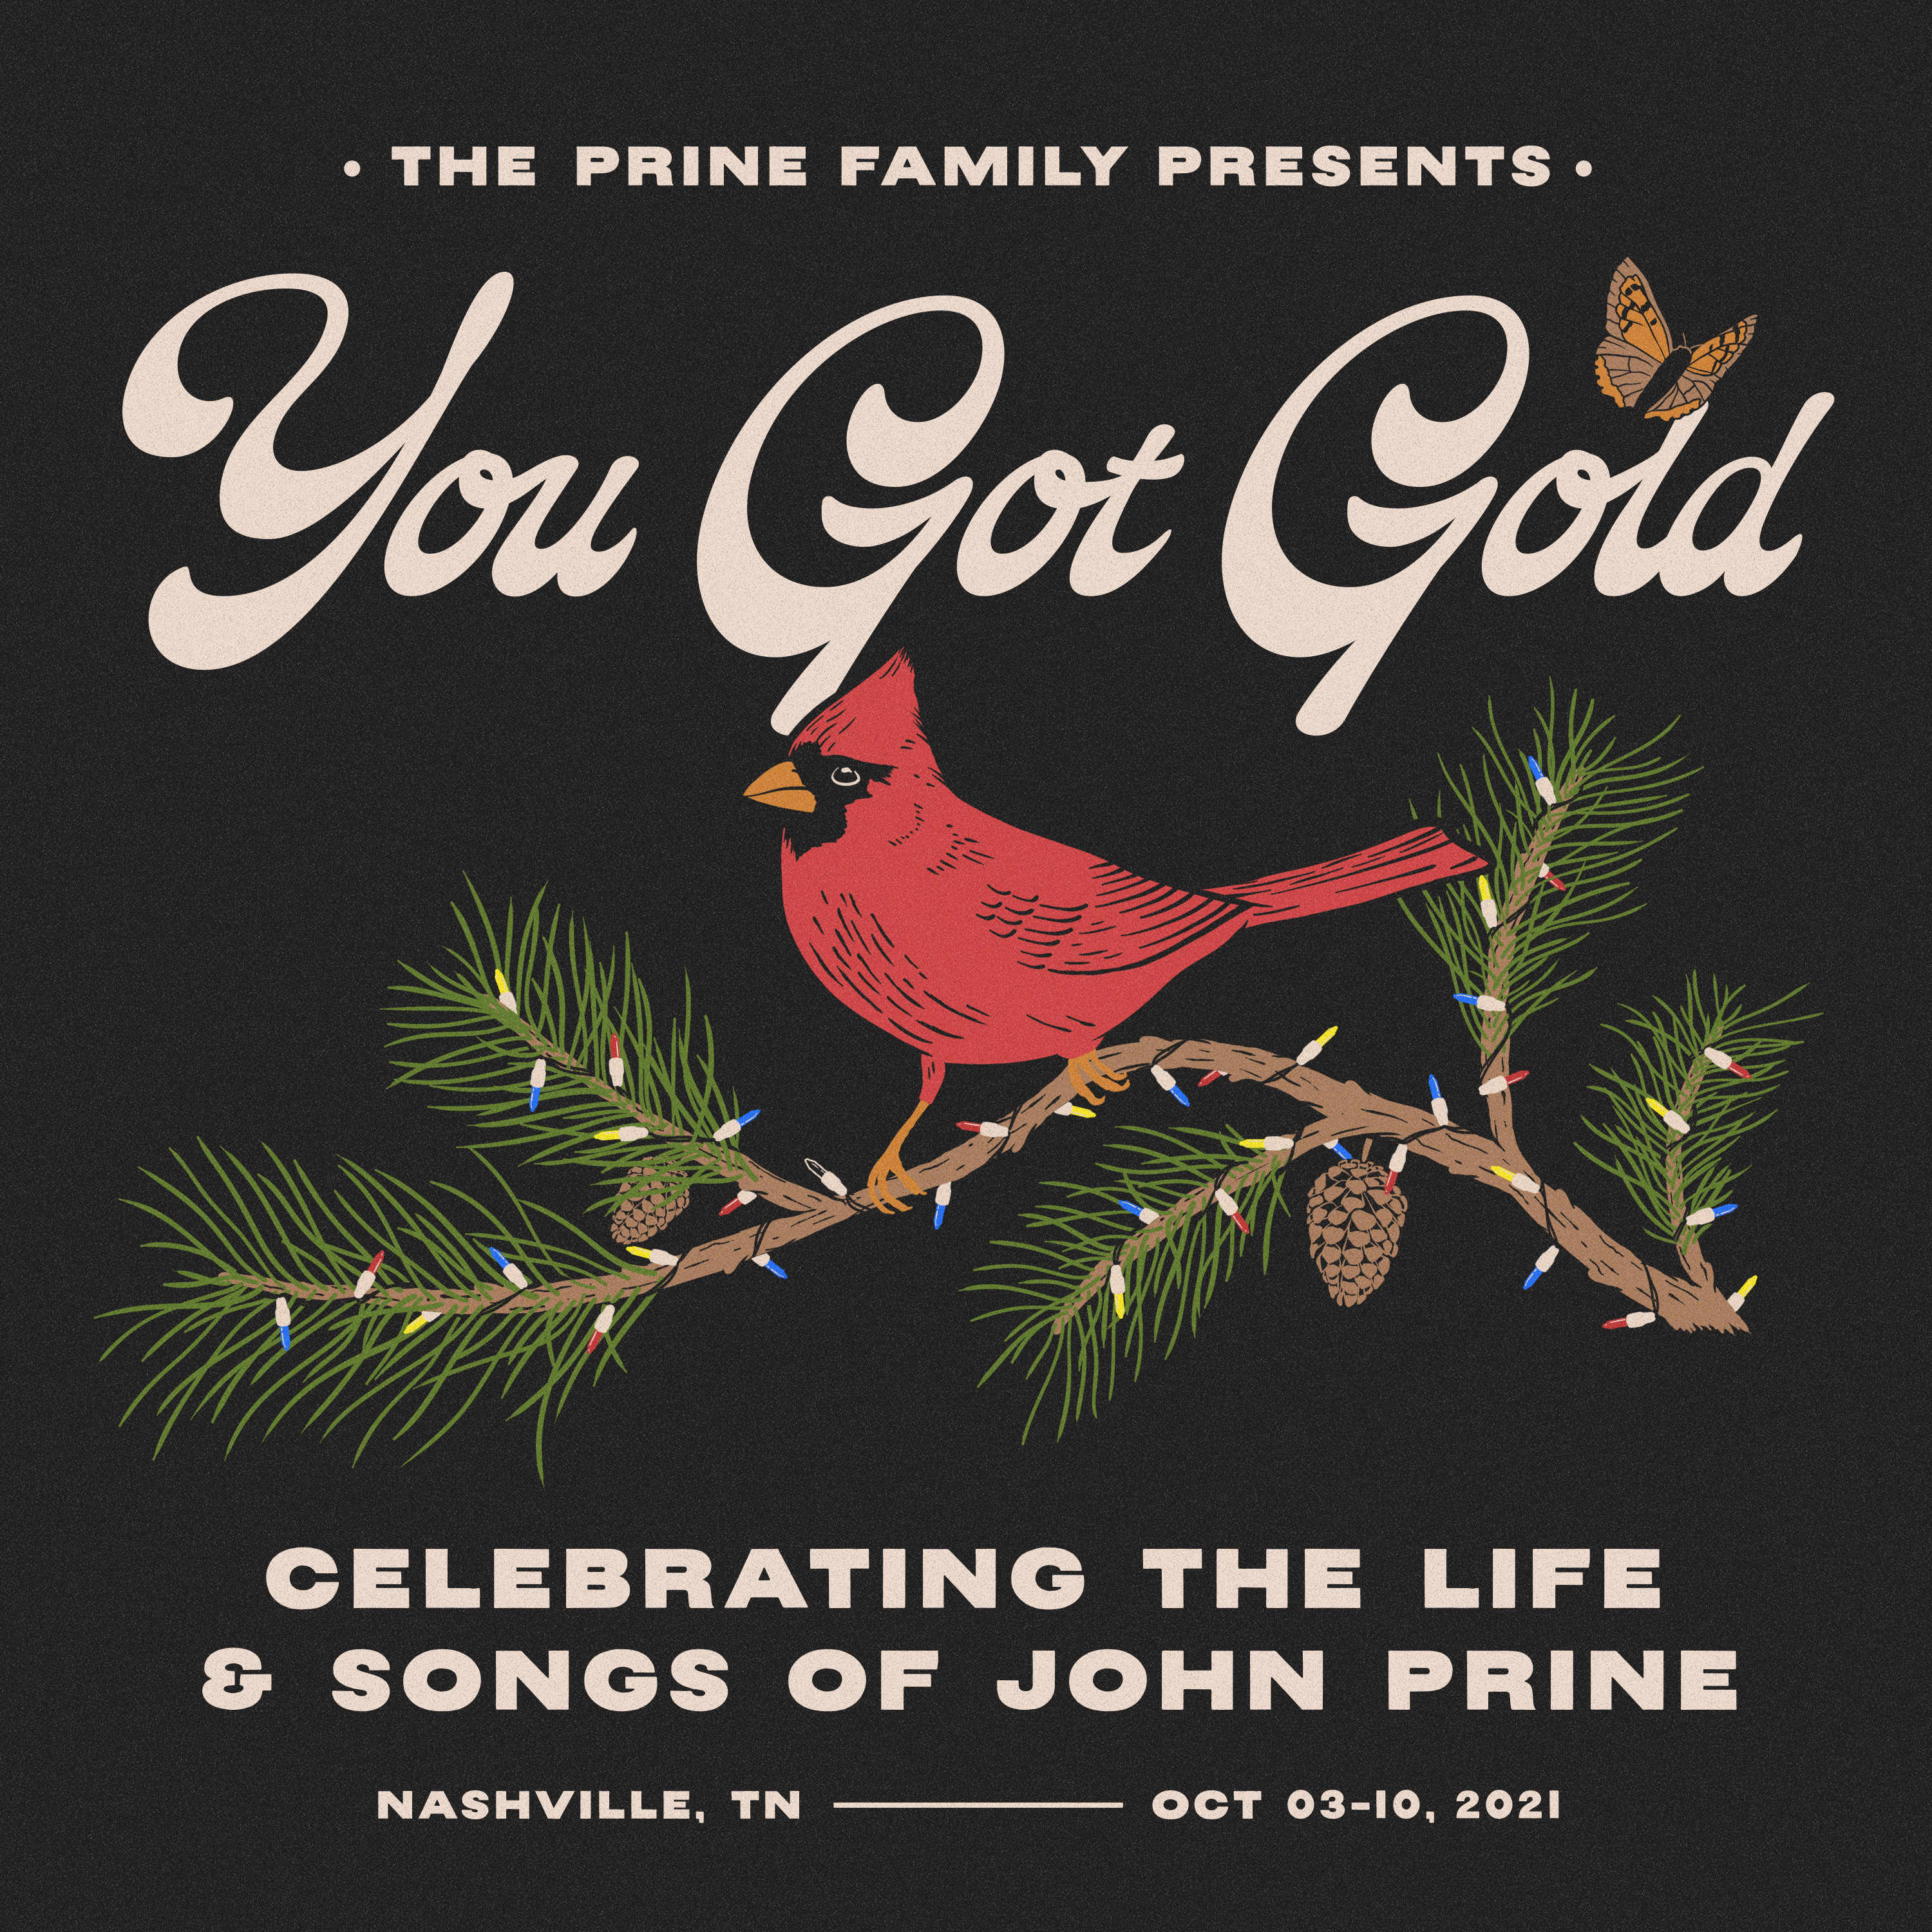 The Prine Family Presents: You Got Gold: Celebrating the Life and Songs of John Prine